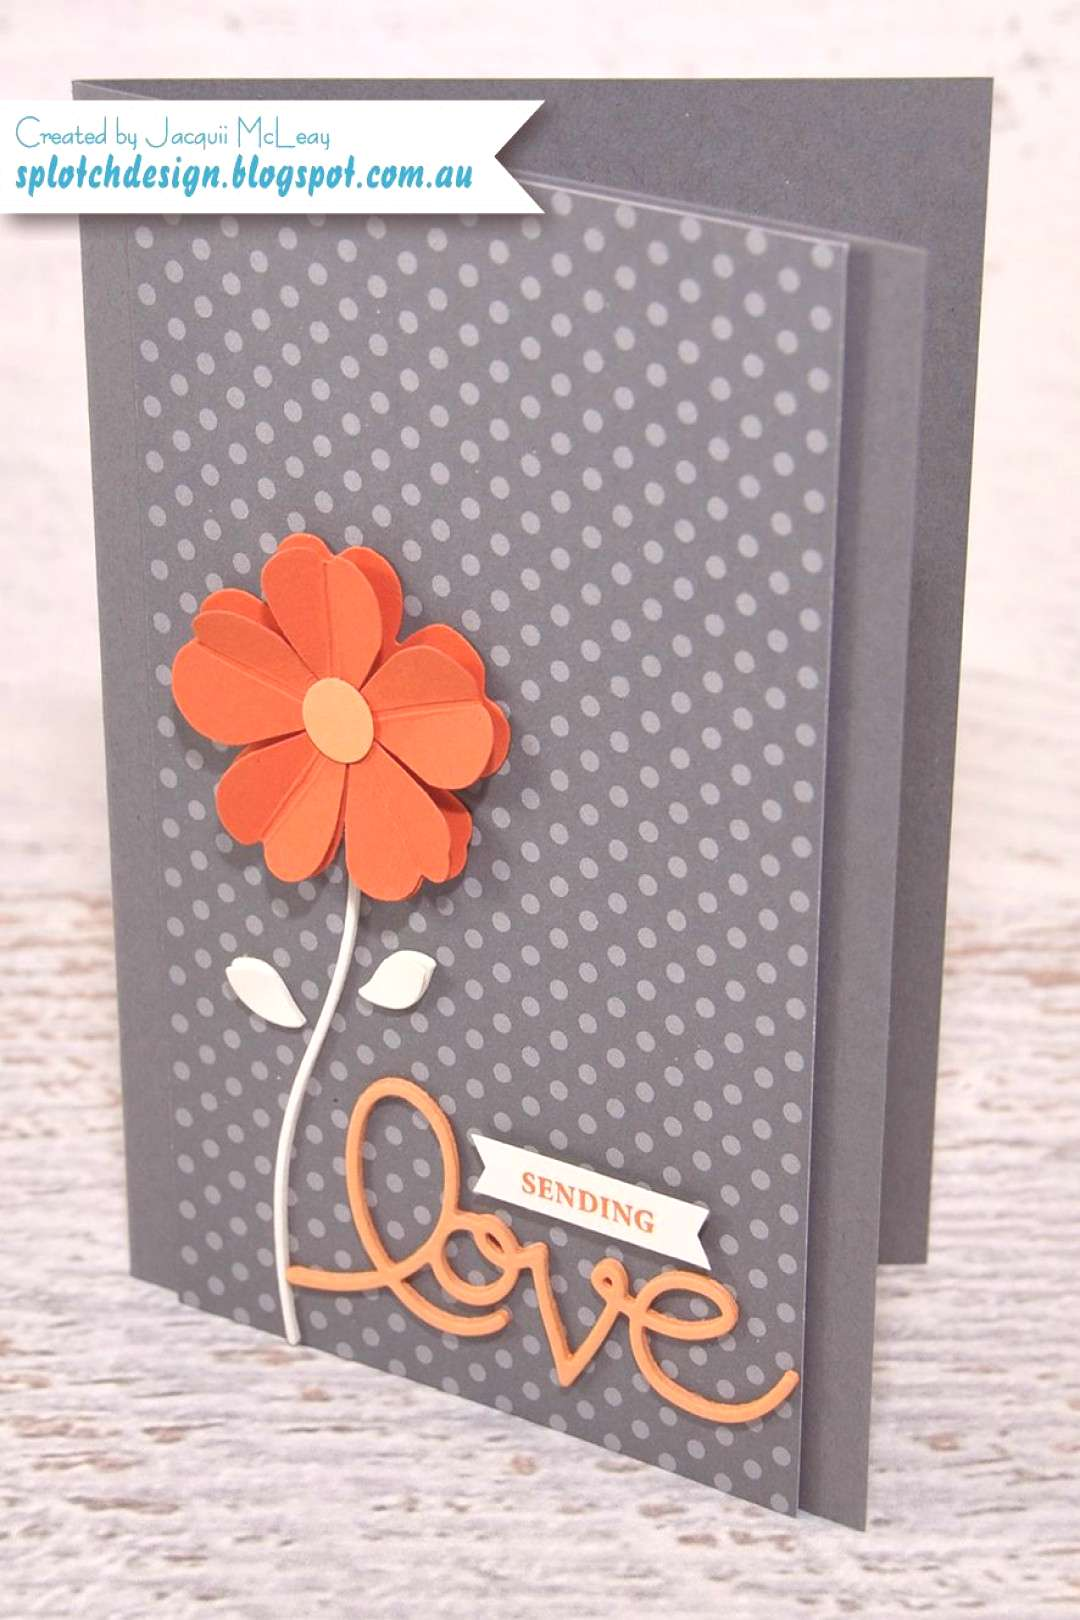 Splotch Design - Jacquii McLeay - Stampin Up Pansy Punch Mothers Day Card